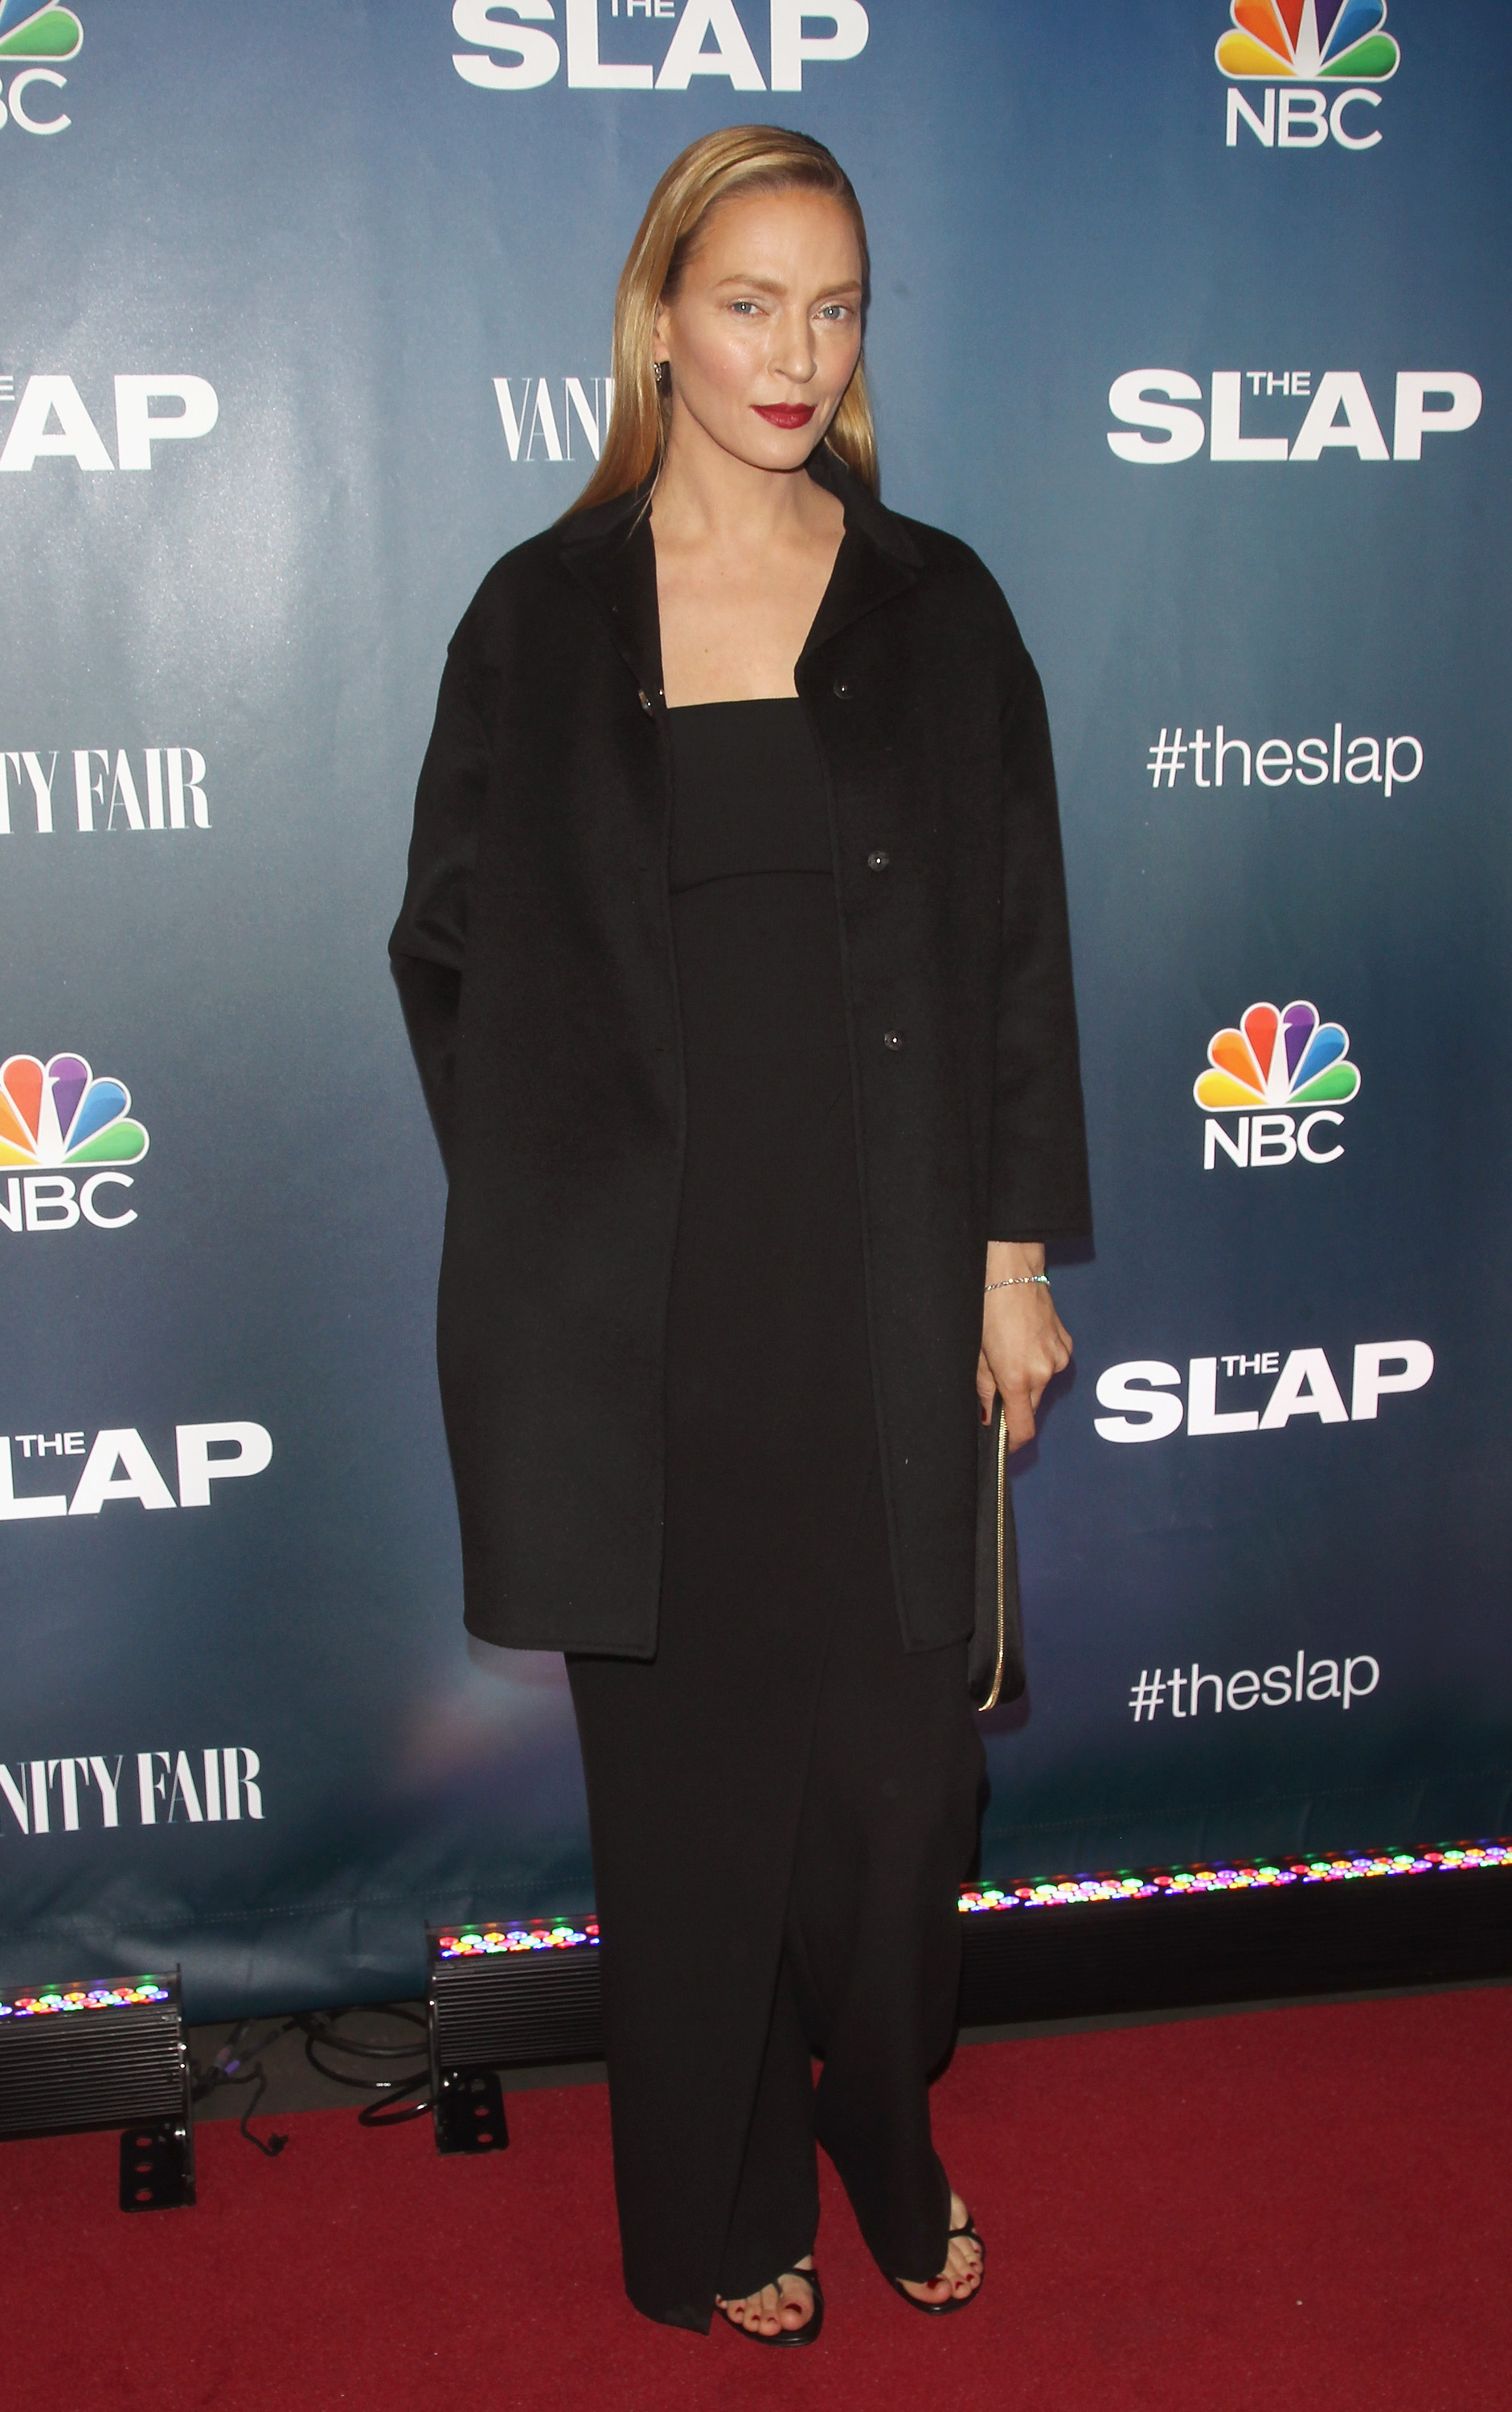 Uma Thurman looks almost unrecognizable on 'The Slap' red carpet